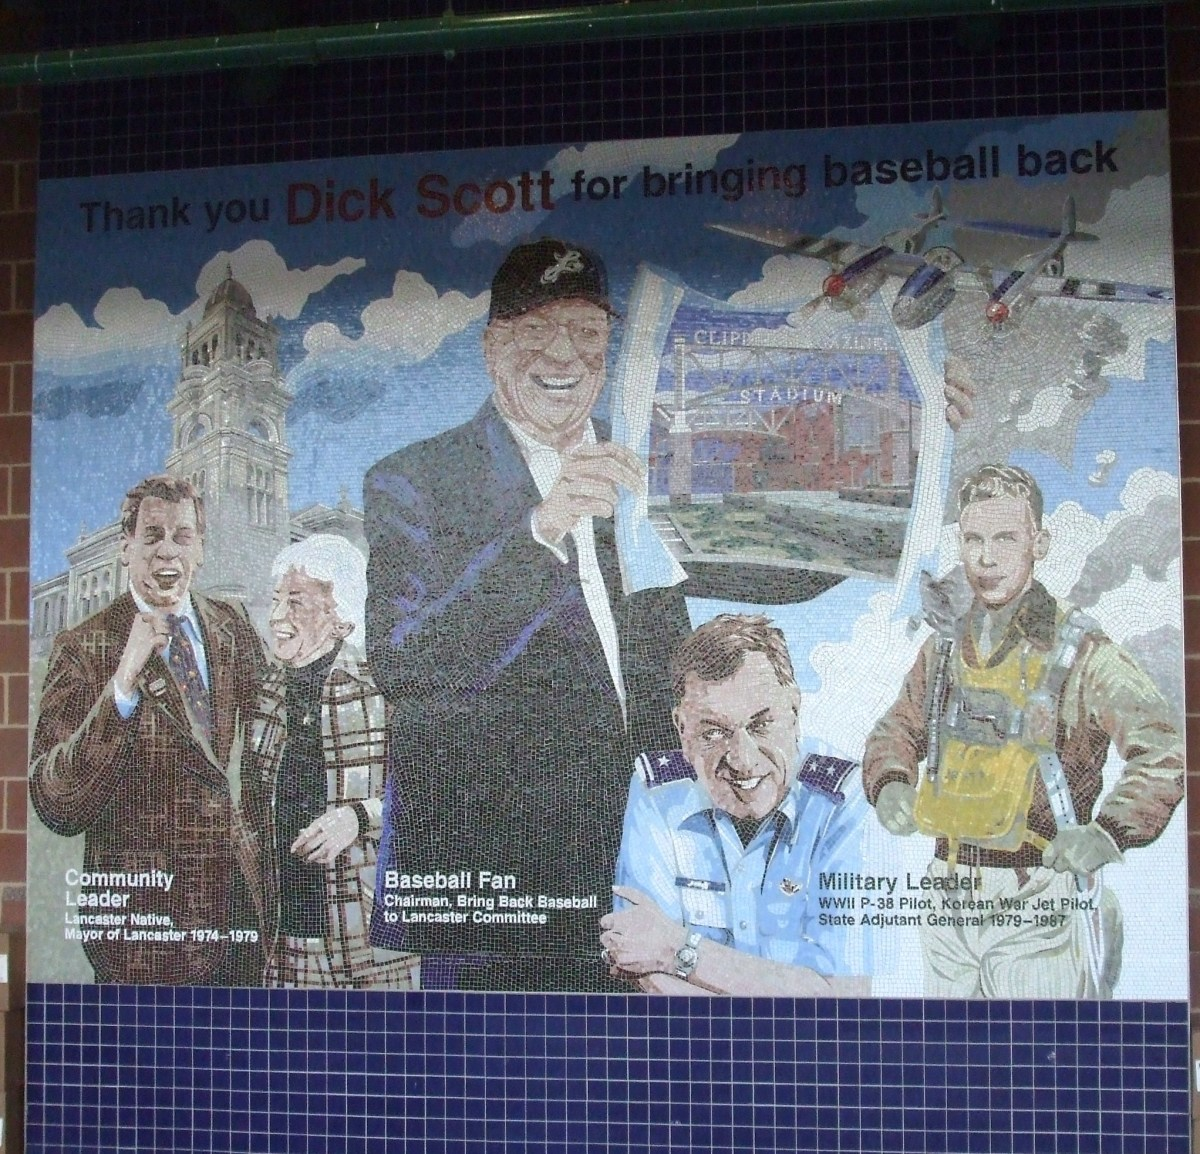 A mosaic honors the citizen who led the campaign to bring professional baseball back to Lancaster, PA.